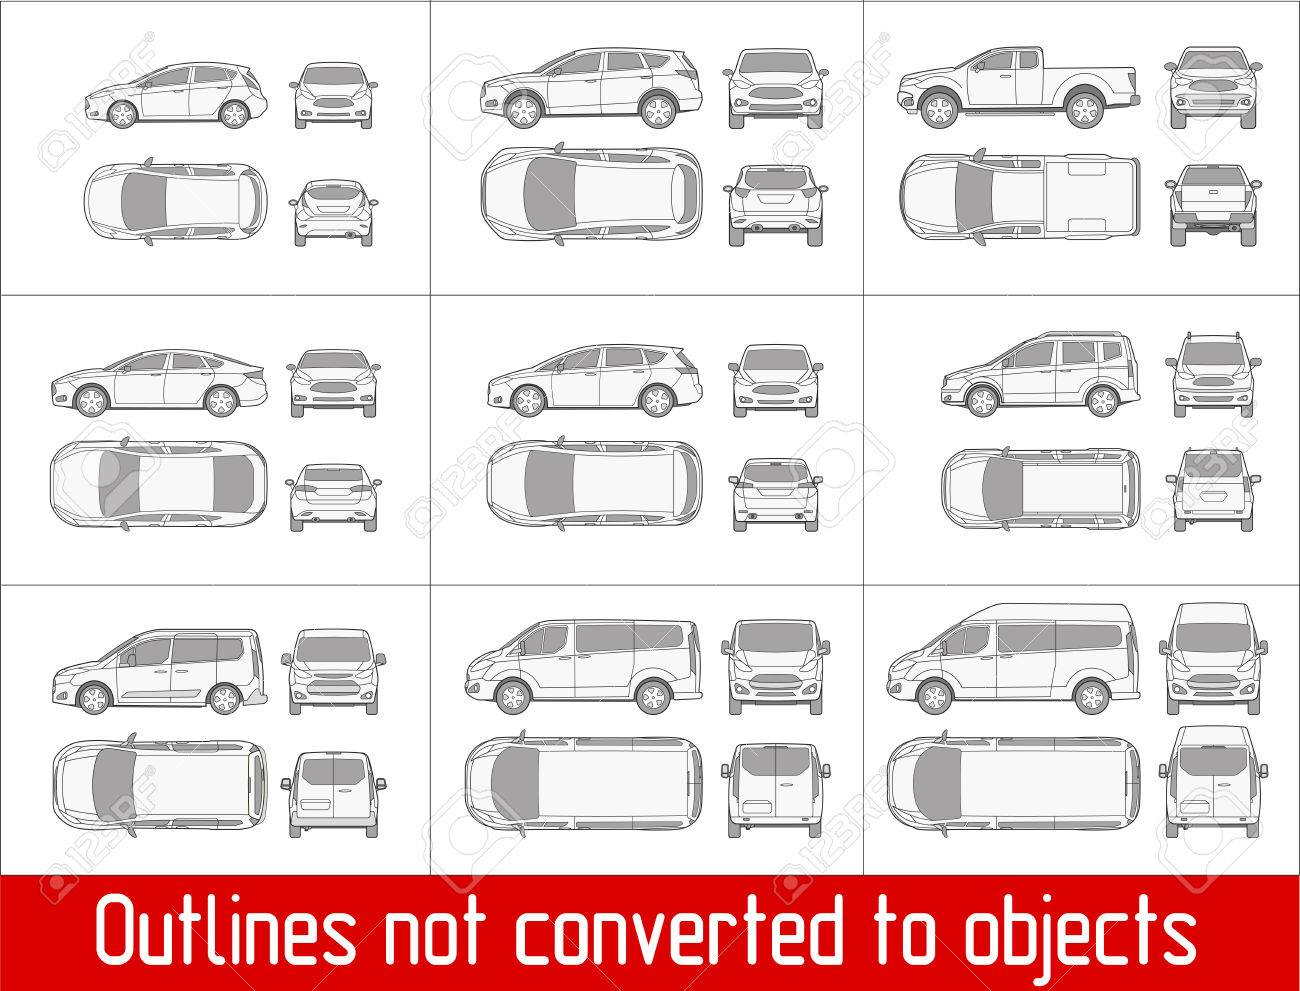 Car sedan and suv drawing outline strokes not expanded - 71671378